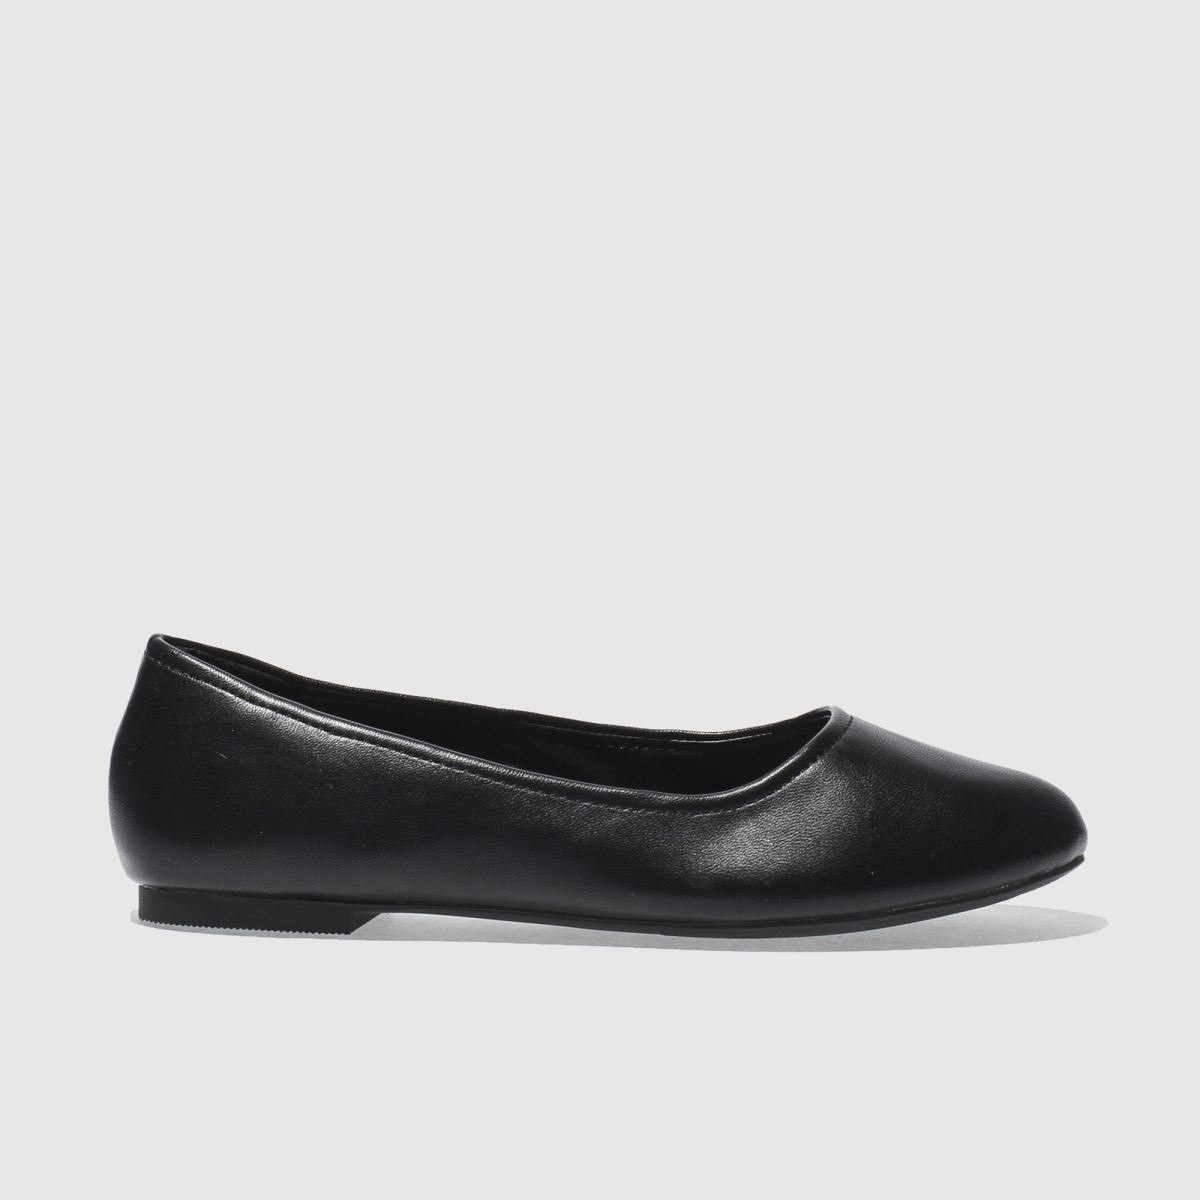 schuh black turn out flat shoes